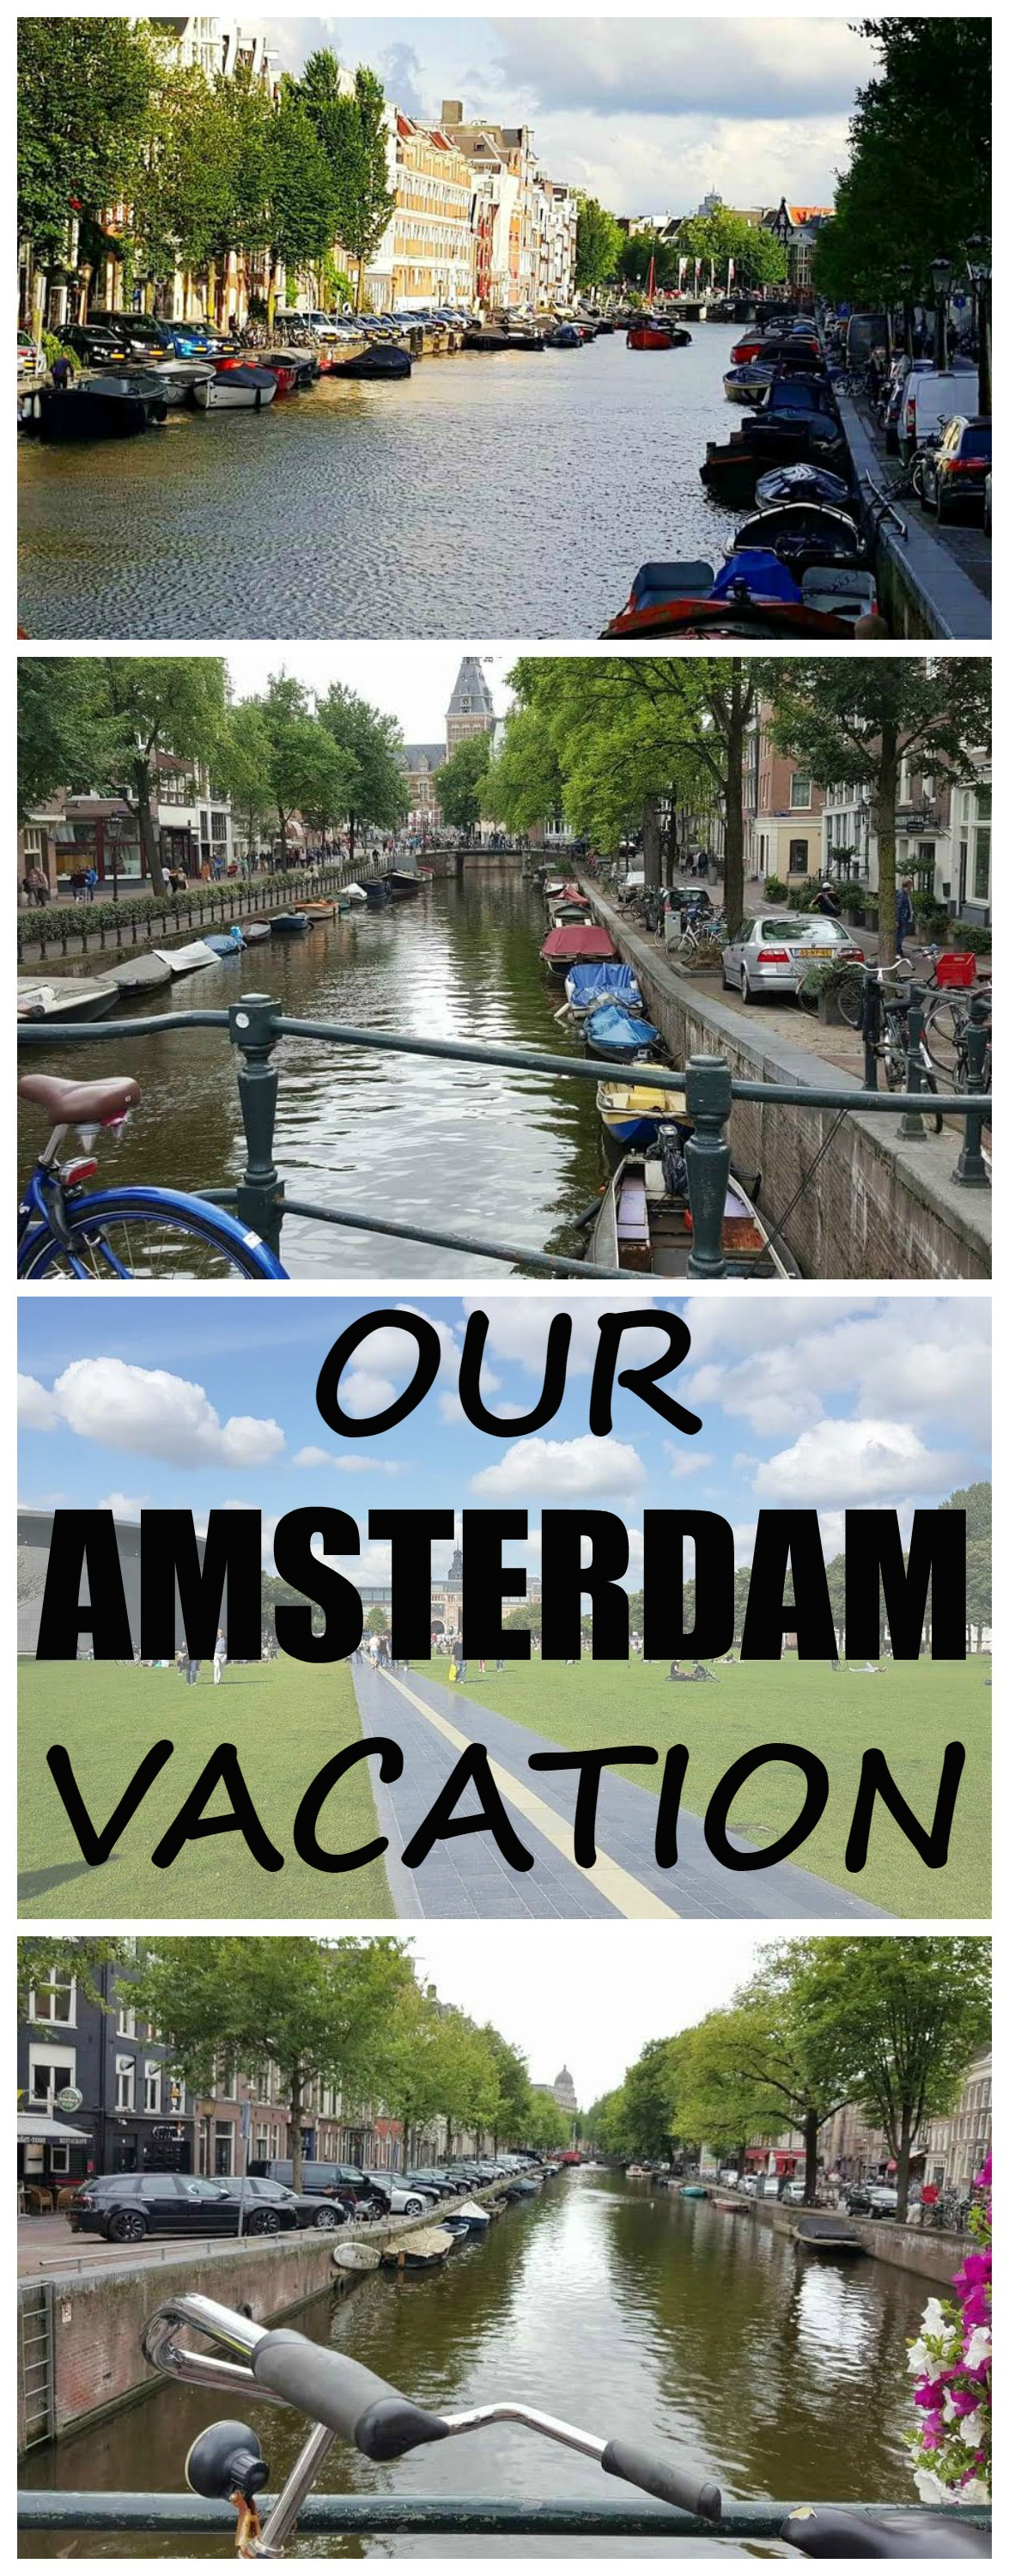 AMSTERDAM VACATION